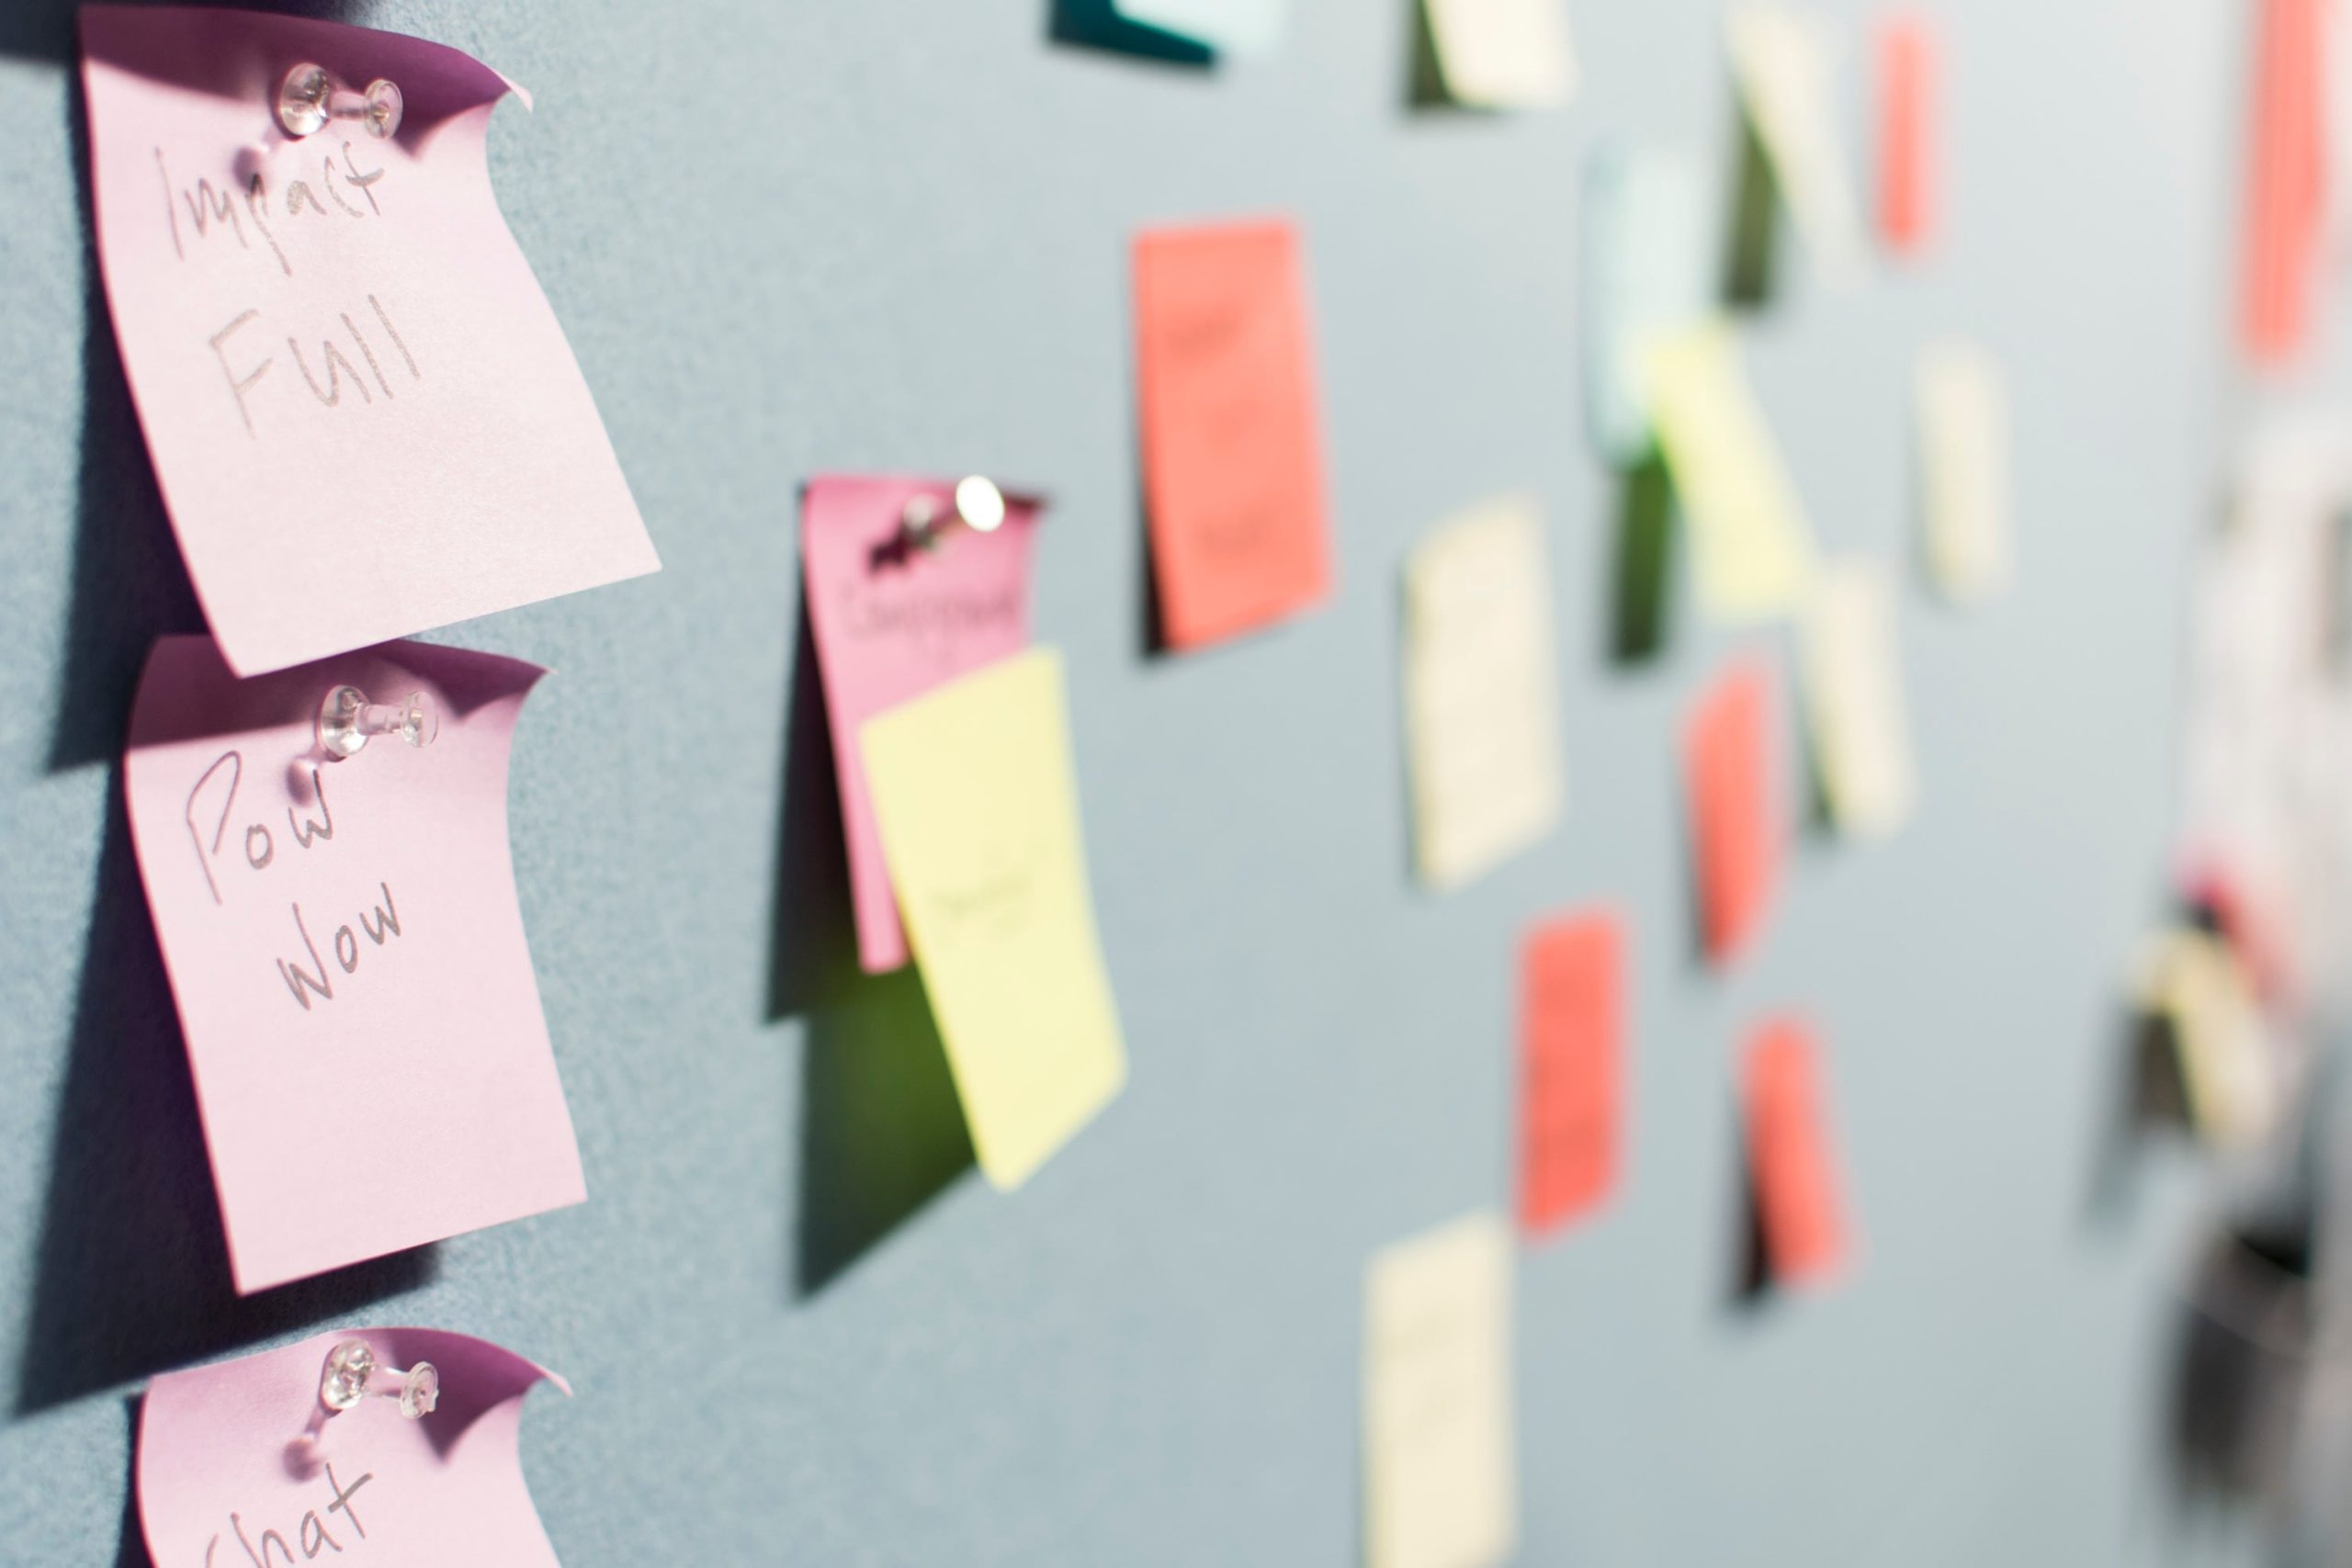 Board with Post-Its